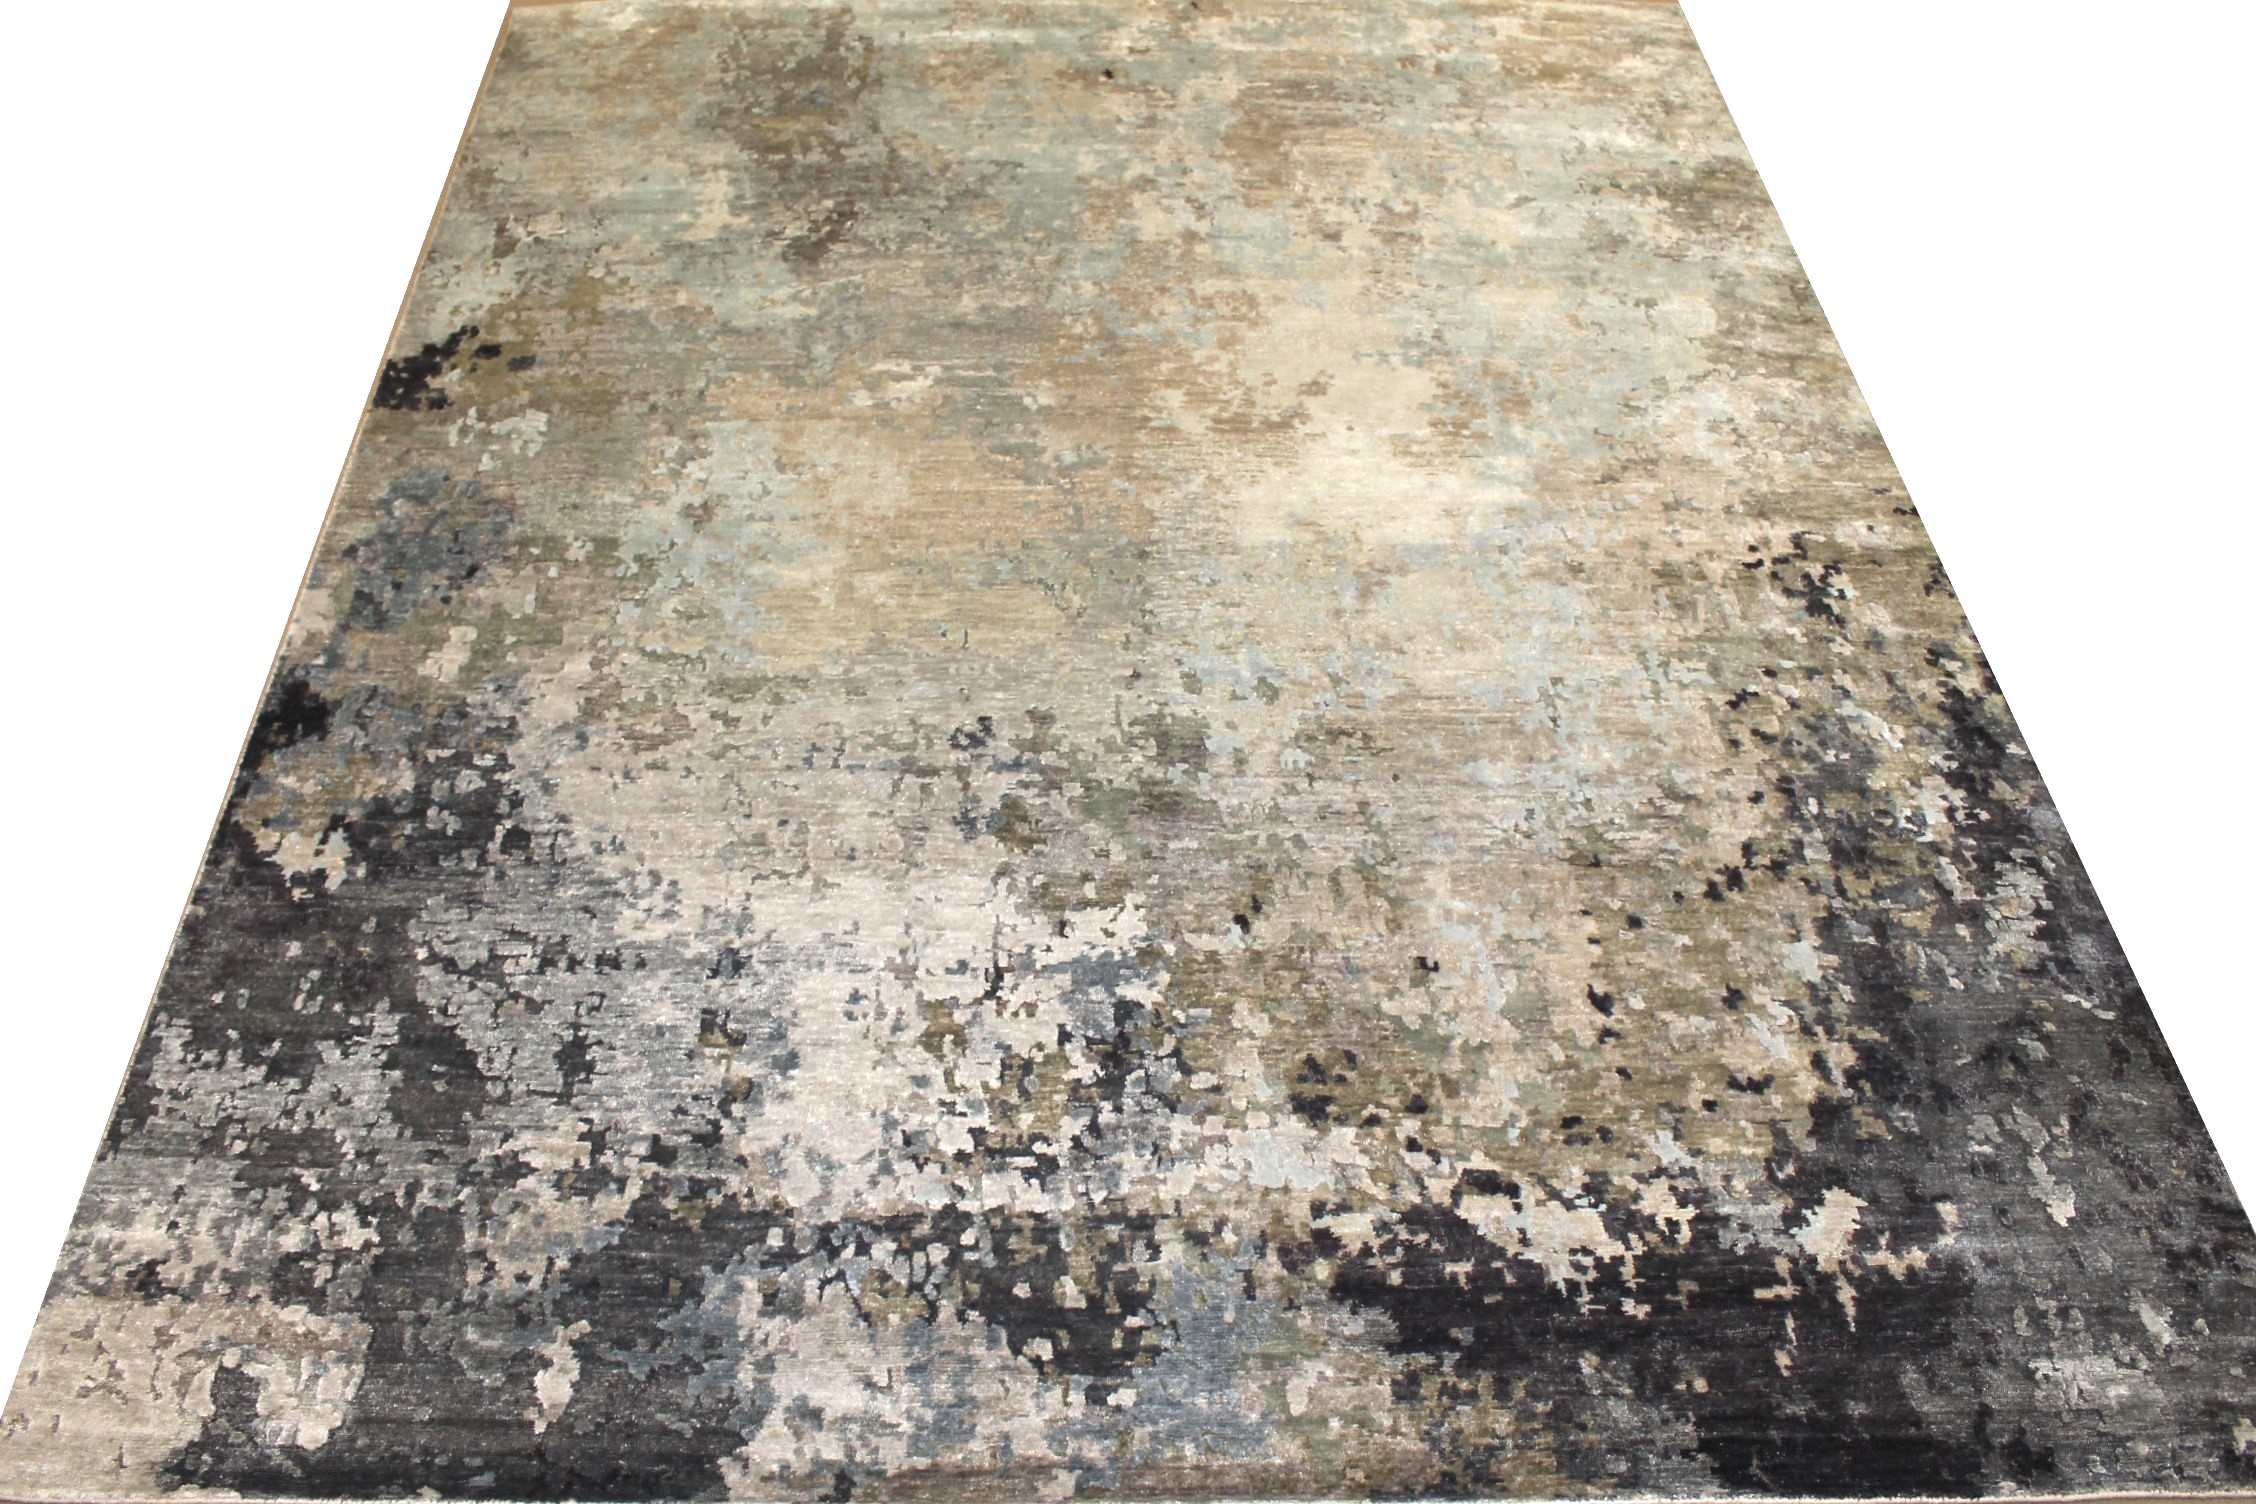 8x10 Modern Hand Knotted Wool & Viscose Area Rug - MR025453